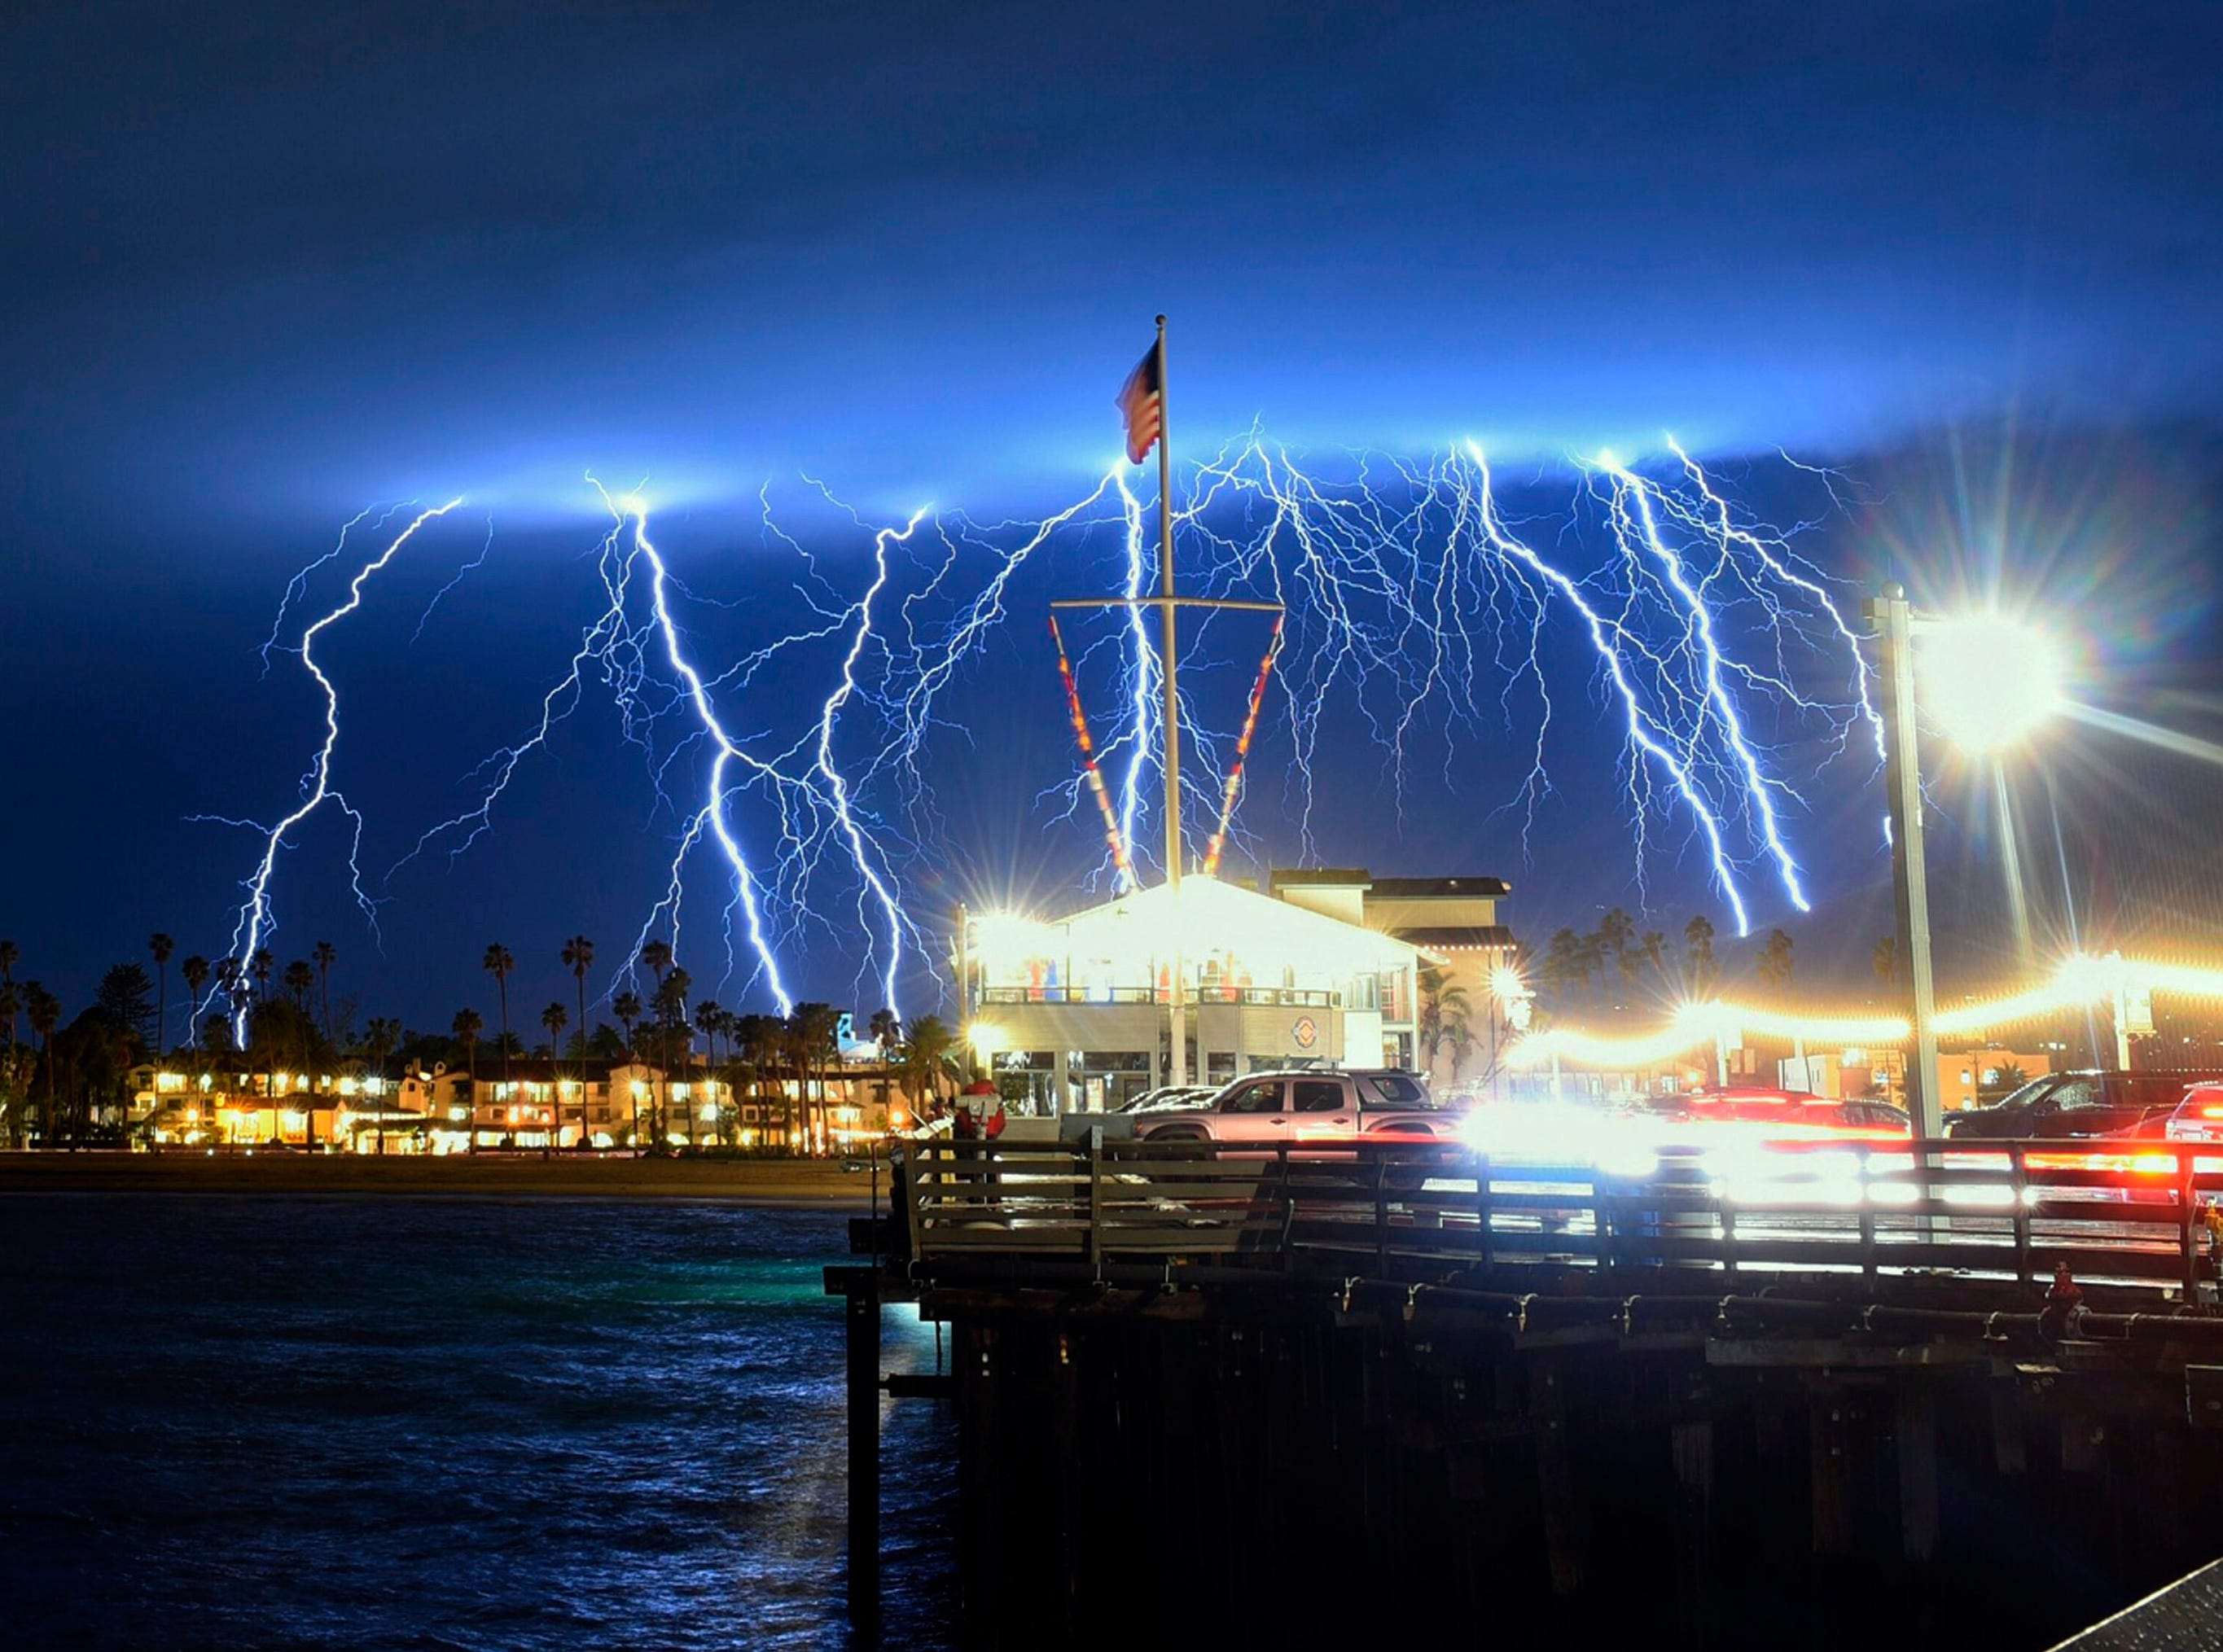 A time exposure photo shows a series of lightning strikes over Santa Barbara, Calif., seen from Stearns Wharf in the city's harbor, Tuesday evening, March 5, 2019. A storm soaking California on Wednesday could trigger mudslides in wildfire burn areas where thousands of residents are under evacuation orders, authorities warned.